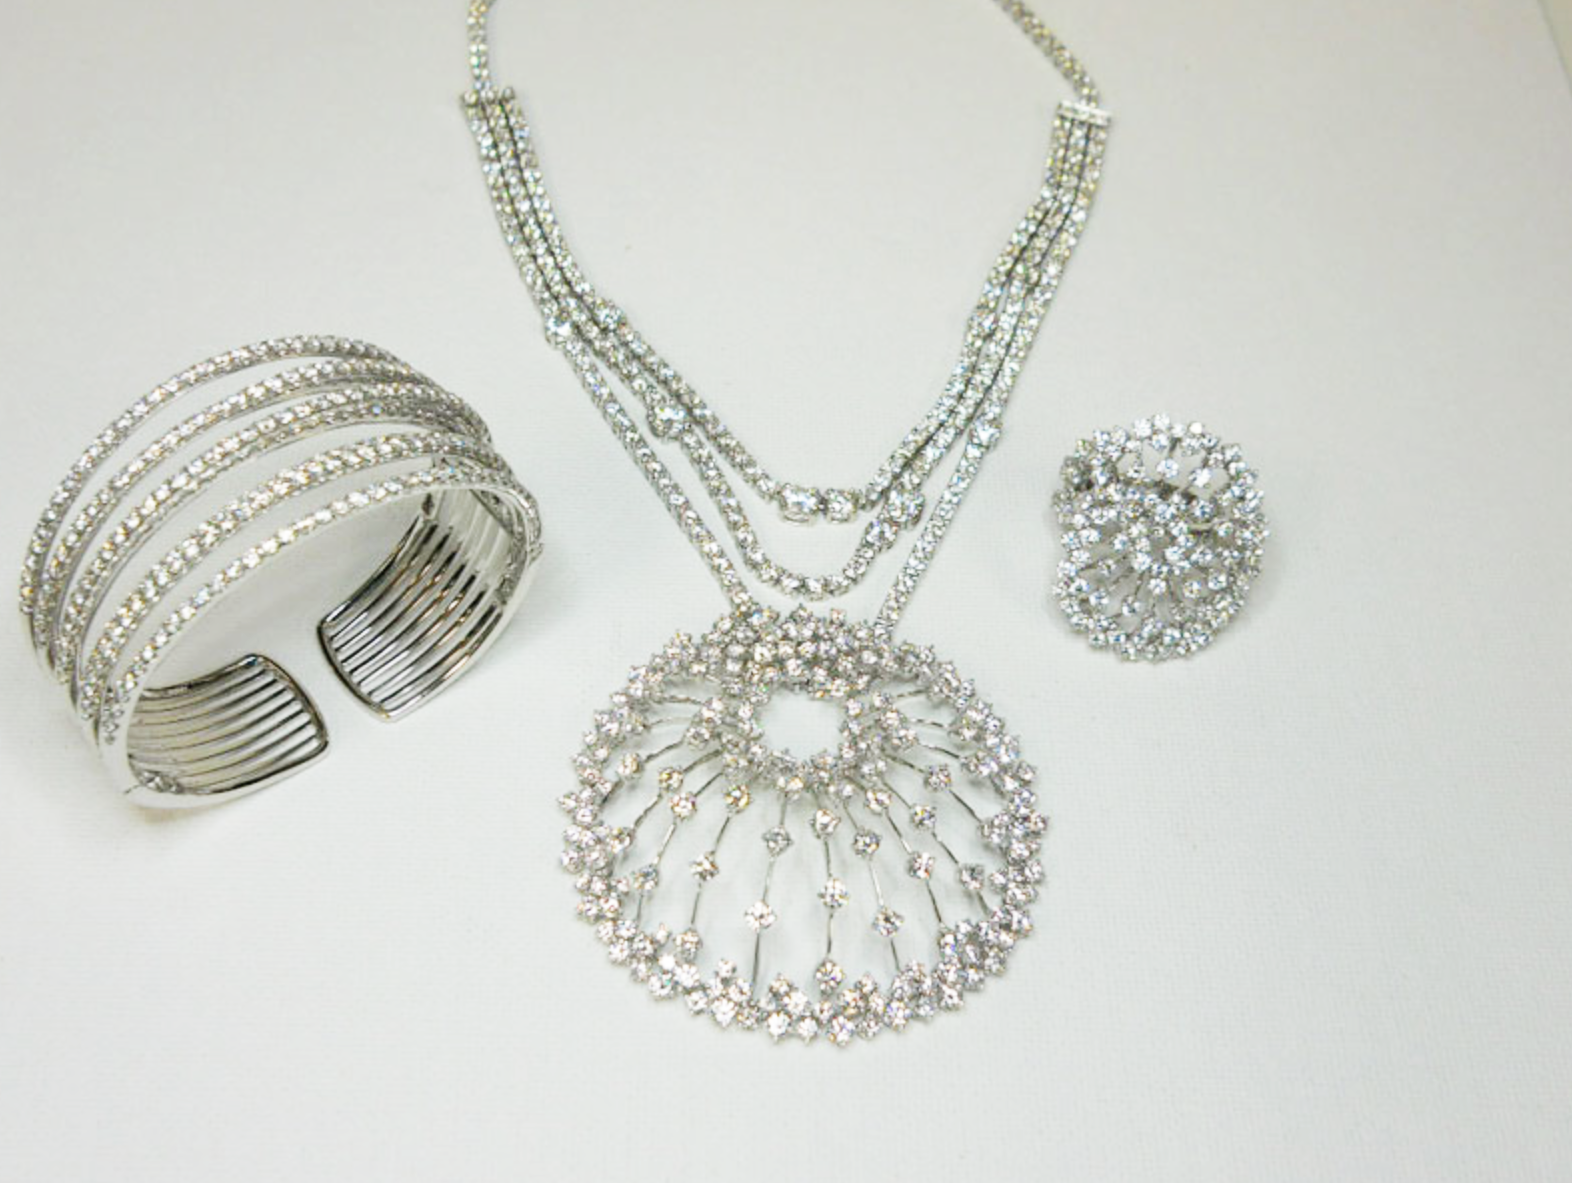 Large diamond 'Starburst' pendant suspended from a triple strand diamond necklace totaling over 40 carats.